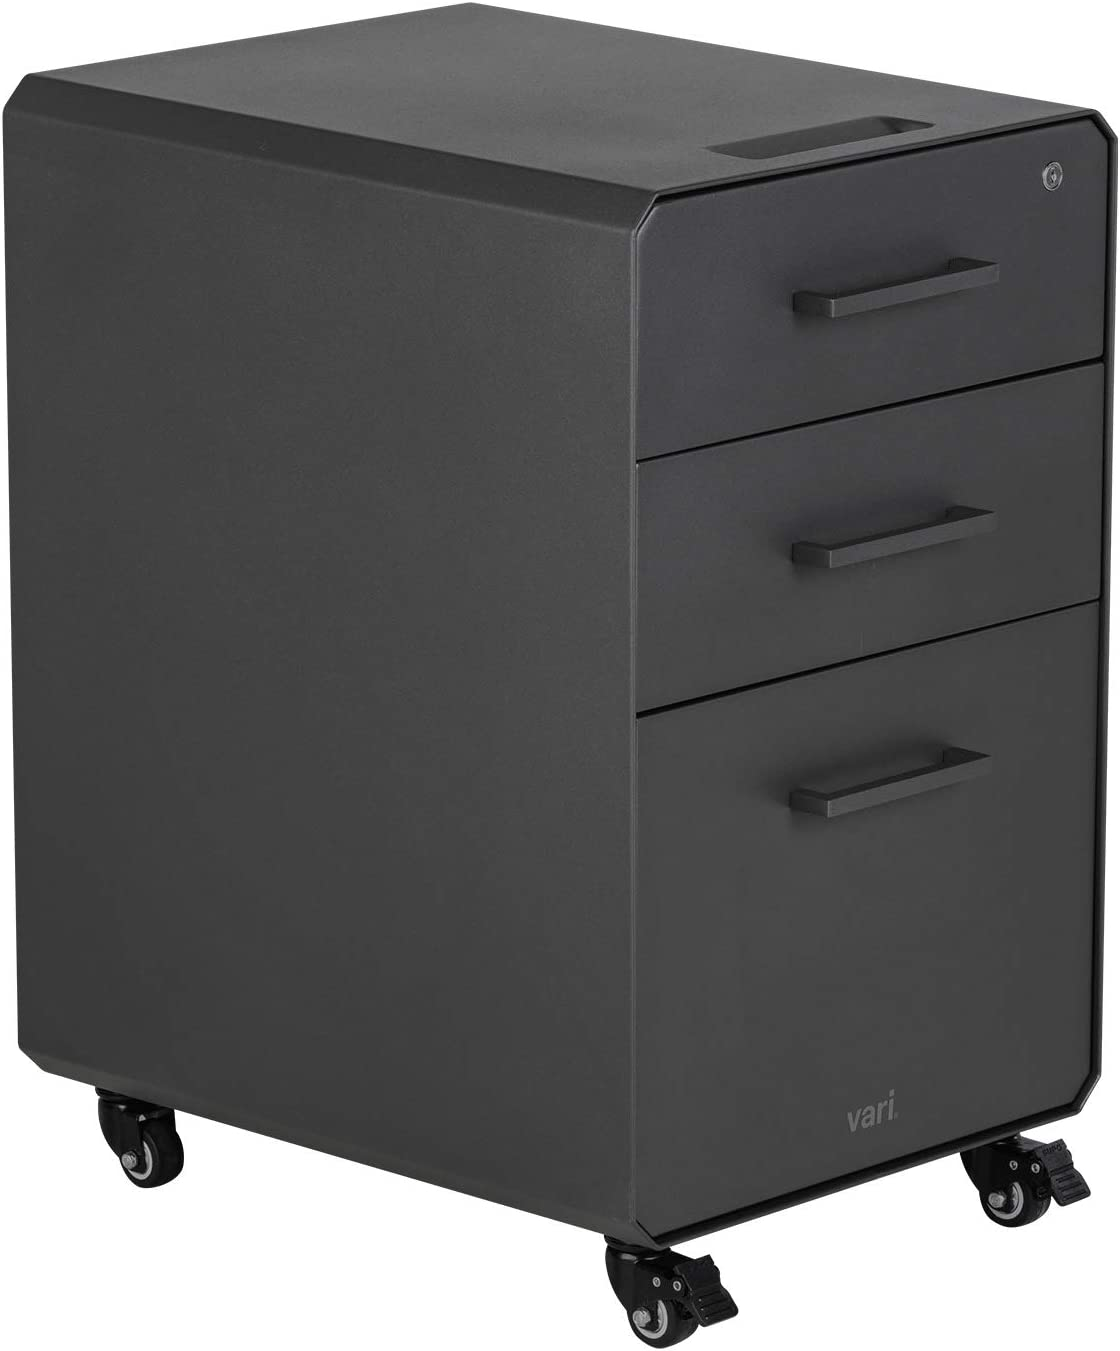 Vari File Cabinet for Office Storage with Three Drawers - Roll & Lock Caster Wheels (Charcoal-Grey)